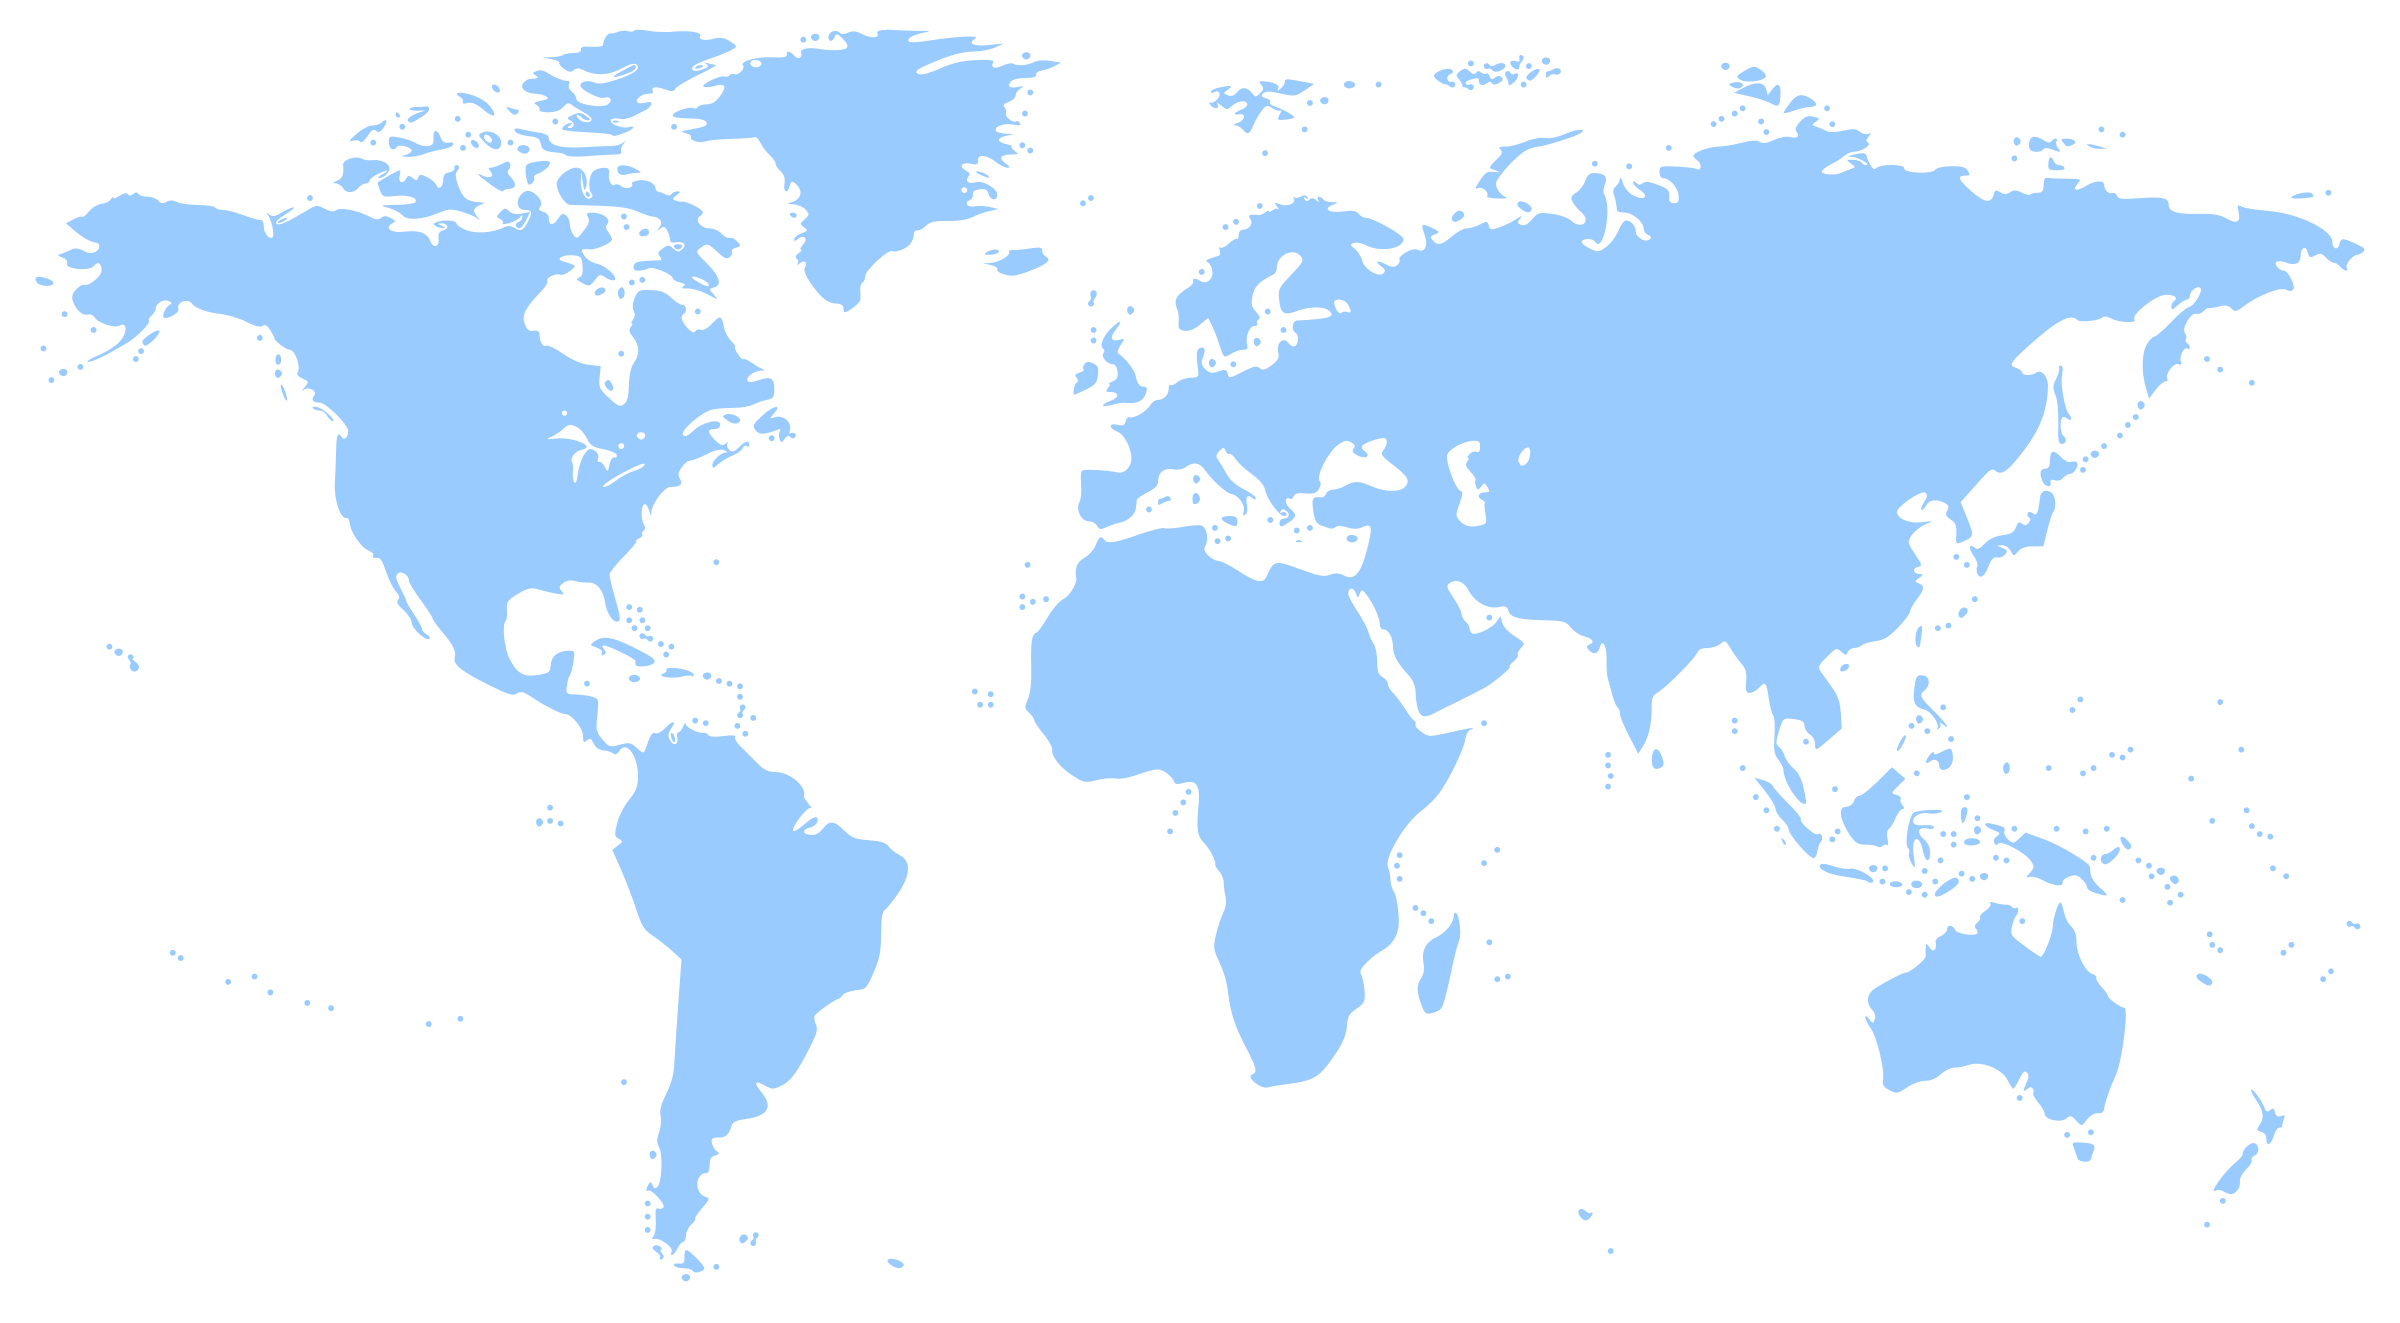 Clipart World Map - Map of globe